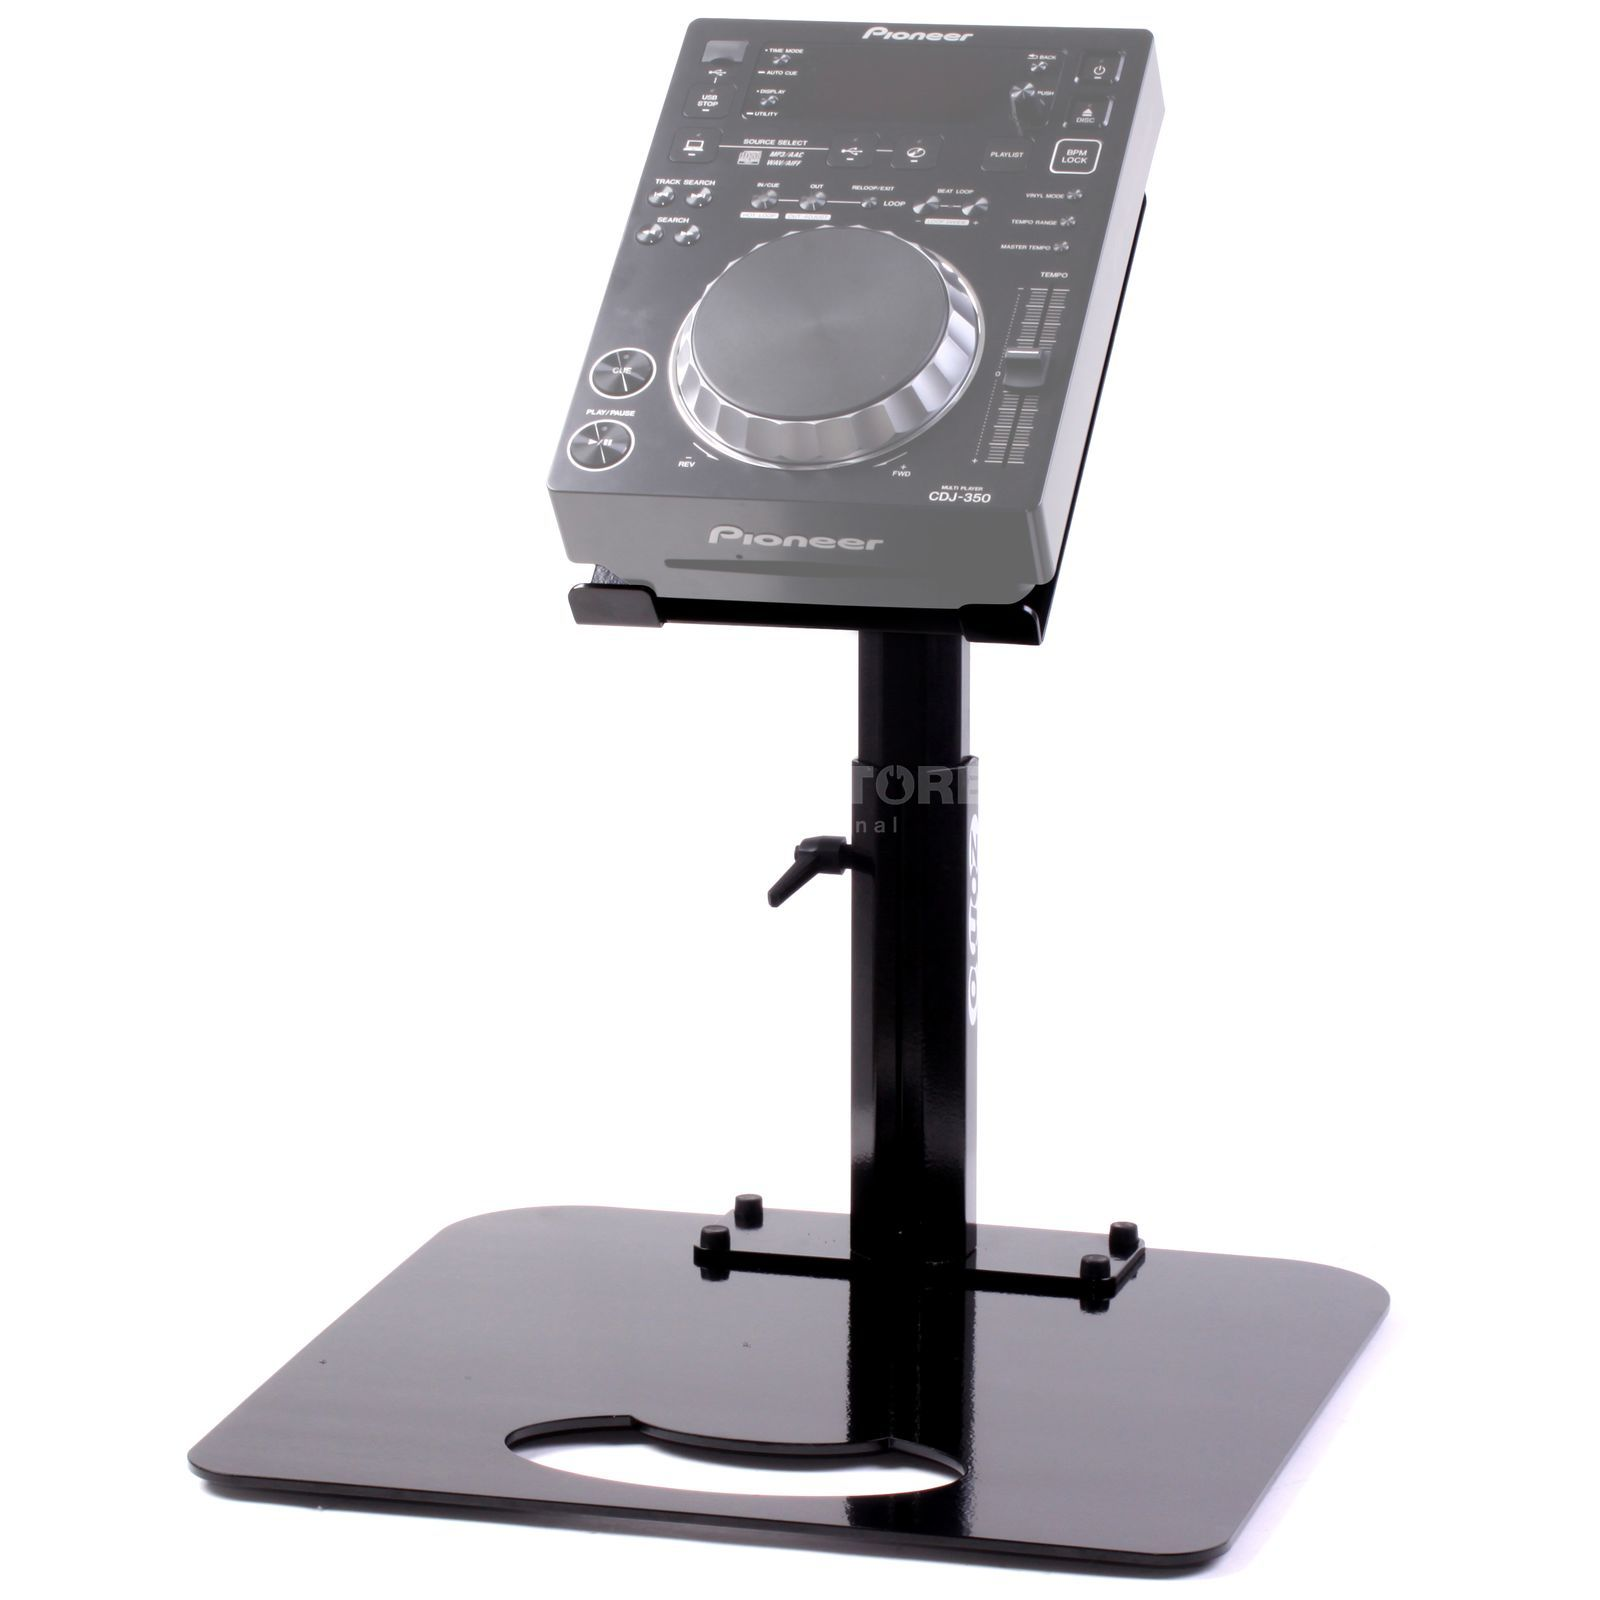 Zomo Pro Stand P-350 Black for 1x Pioneer CDJ-351 Product Image